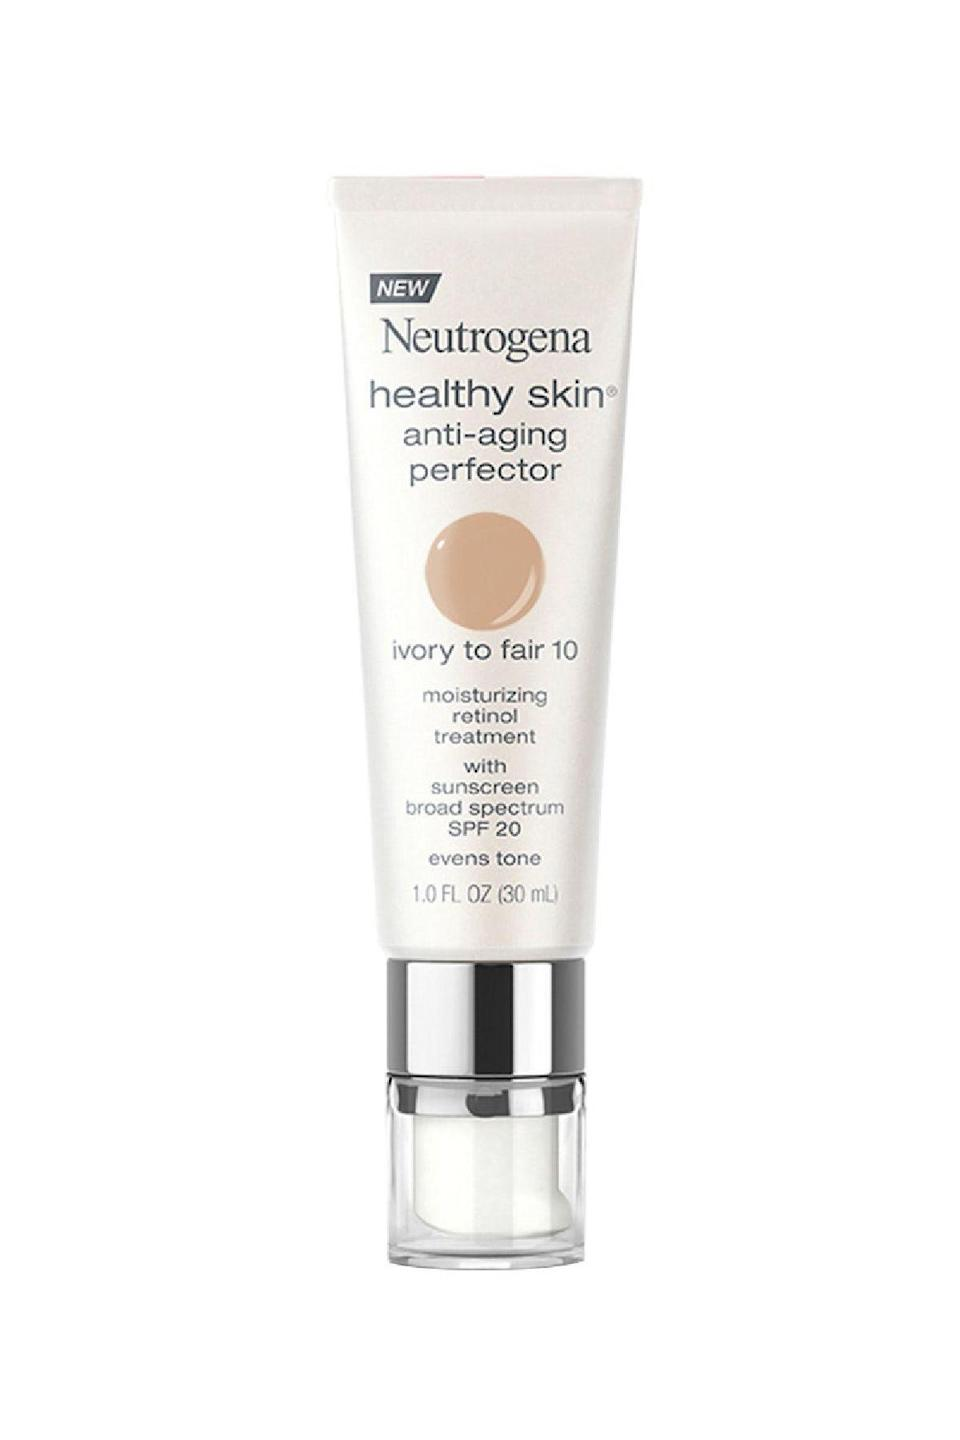 """<p><strong>Neutrogena</strong></p><p>target.com</p><p><strong>$8.99</strong></p><p><a href=""""https://www.target.com/p/neutrogena-174-healthy-skin-anti-aging-perfector/-/A-51158492"""" rel=""""nofollow noopener"""" target=""""_blank"""" data-ylk=""""slk:SHOP IT"""" class=""""link rapid-noclick-resp"""">SHOP IT</a></p><p>You don't need to have """"aging"""" skin to enjoy the benefits of SPF 20 plus added retinol, which work in tandem to prevent complexion damage and repair any that's already been done. </p>"""